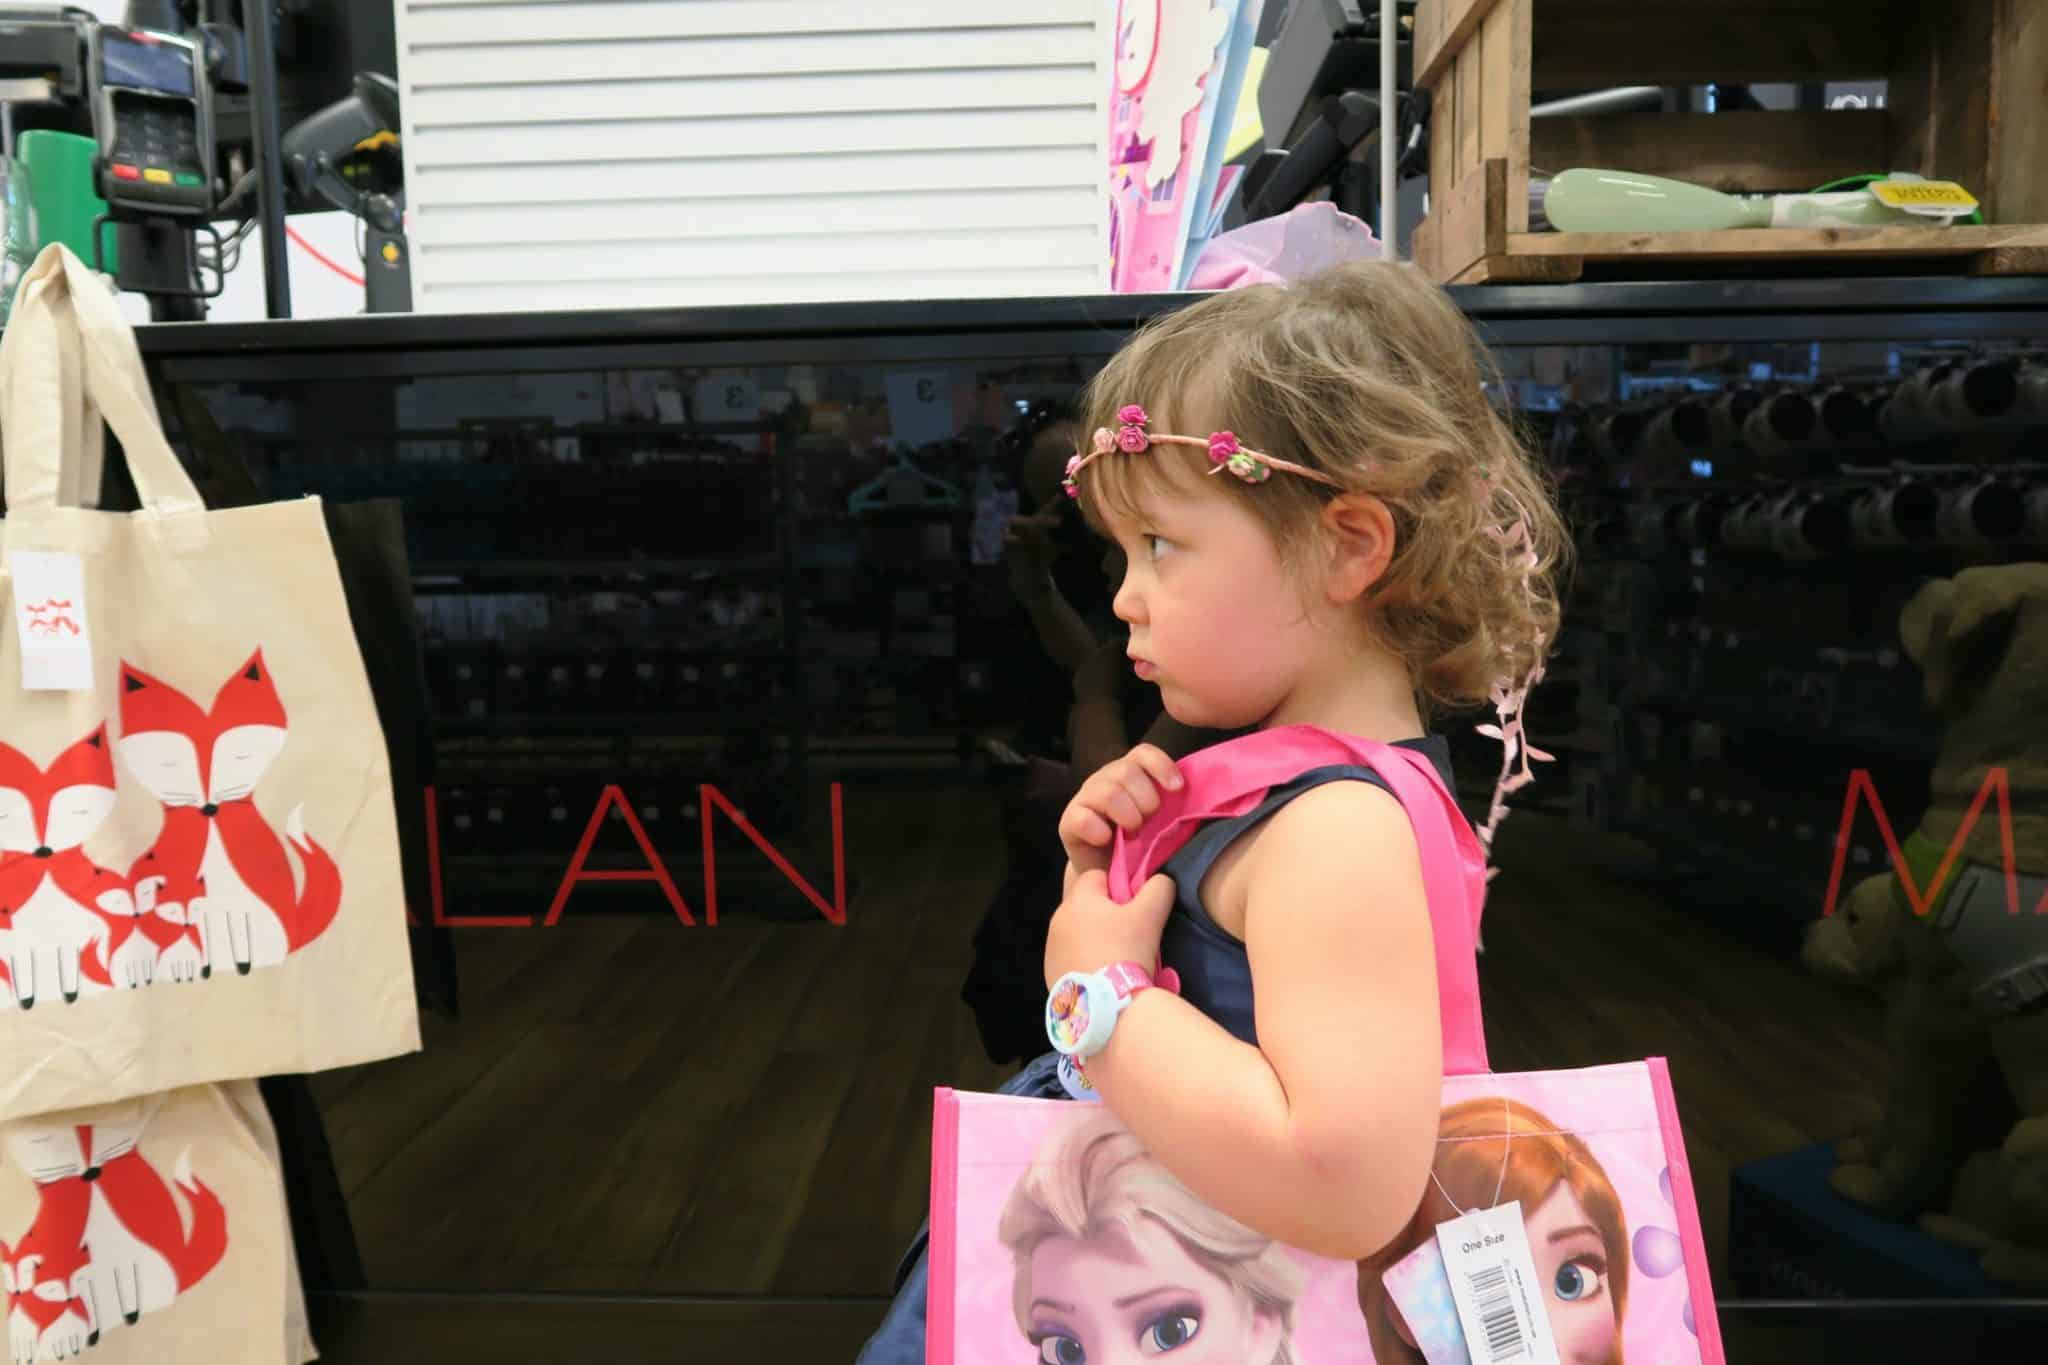 Little girl out shopping